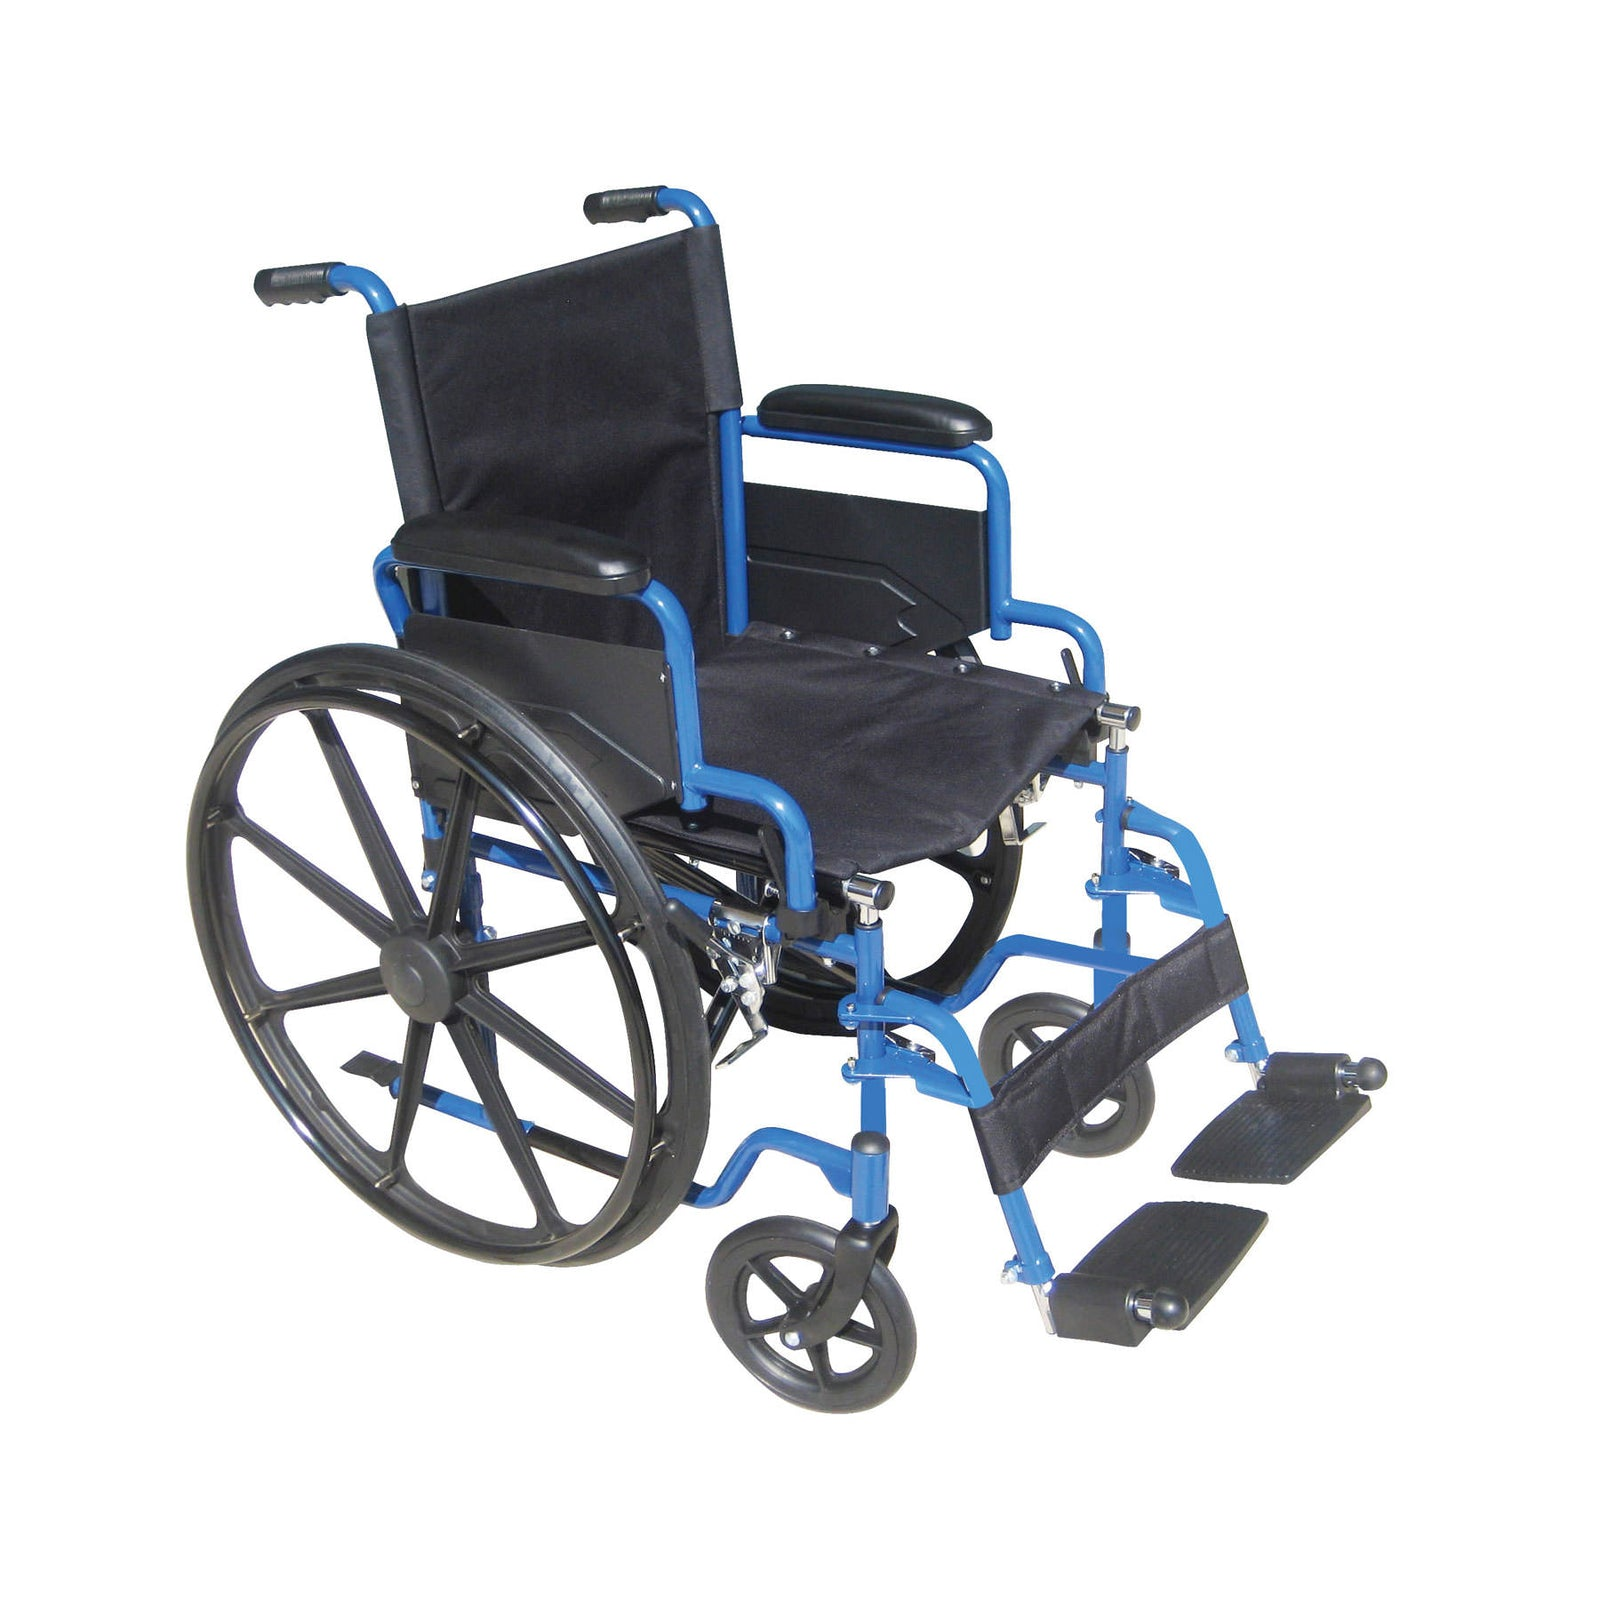 Standard Wheelchairs - Just Walkers